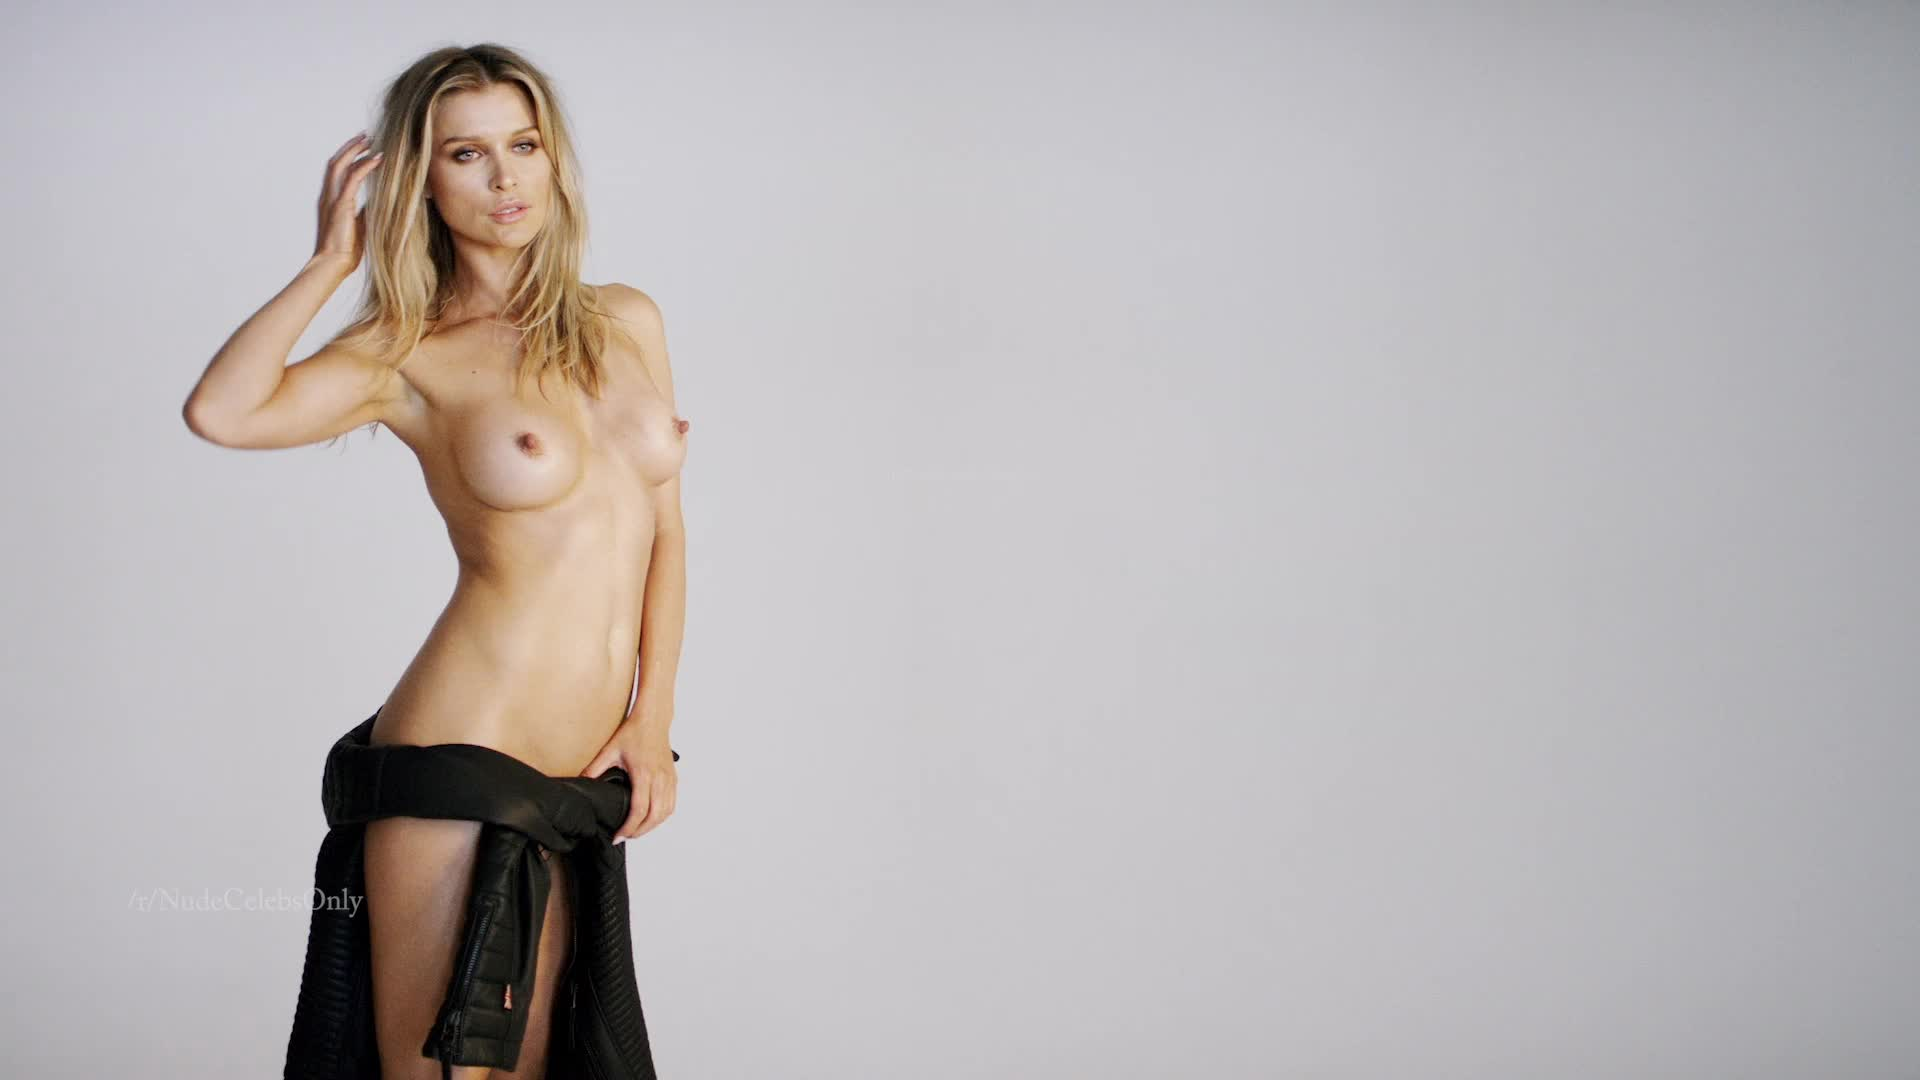 Joanna Krupa topless, naked nsfw video. Showing off fabulous body!